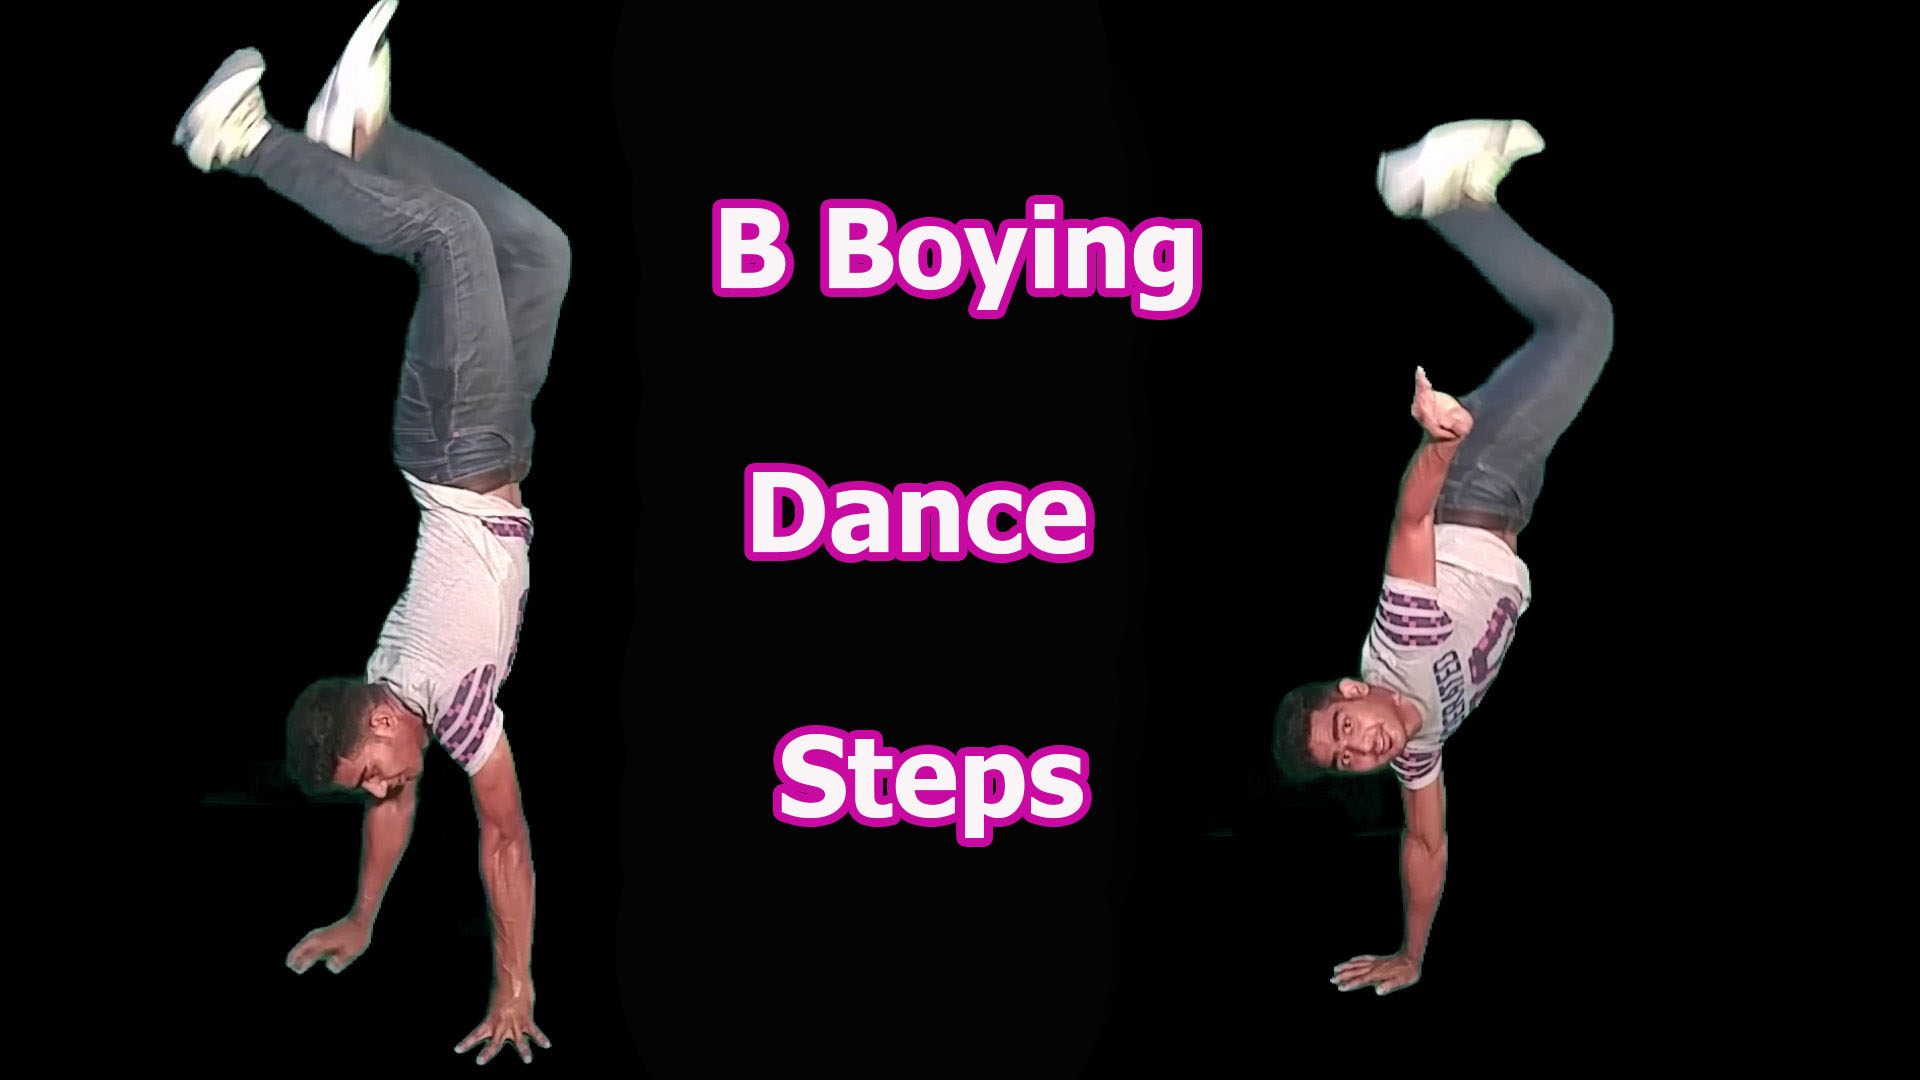 6 Ways to Breakdance - wikiHow